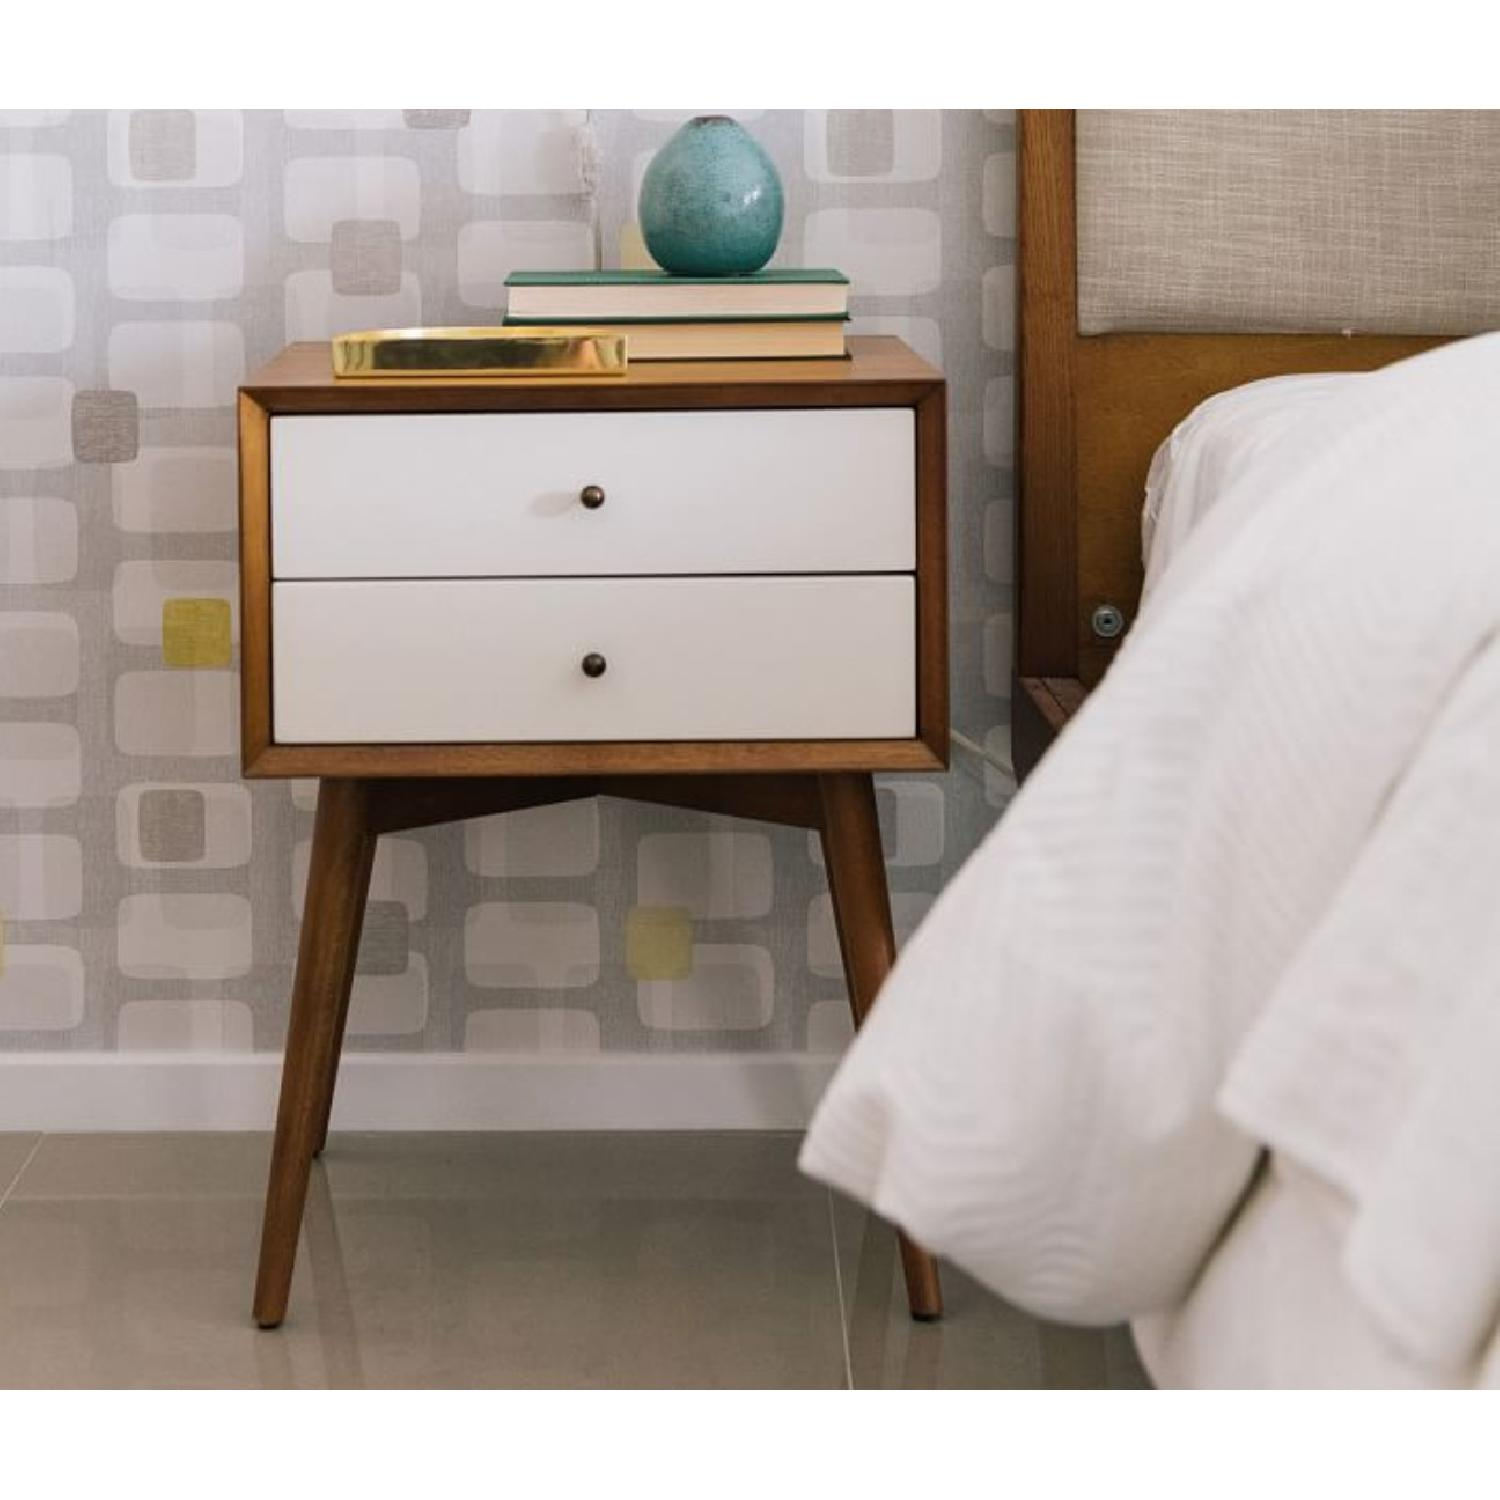 West Elm Mid-Century Nightstand in White Lacquer/Acorn - image-1